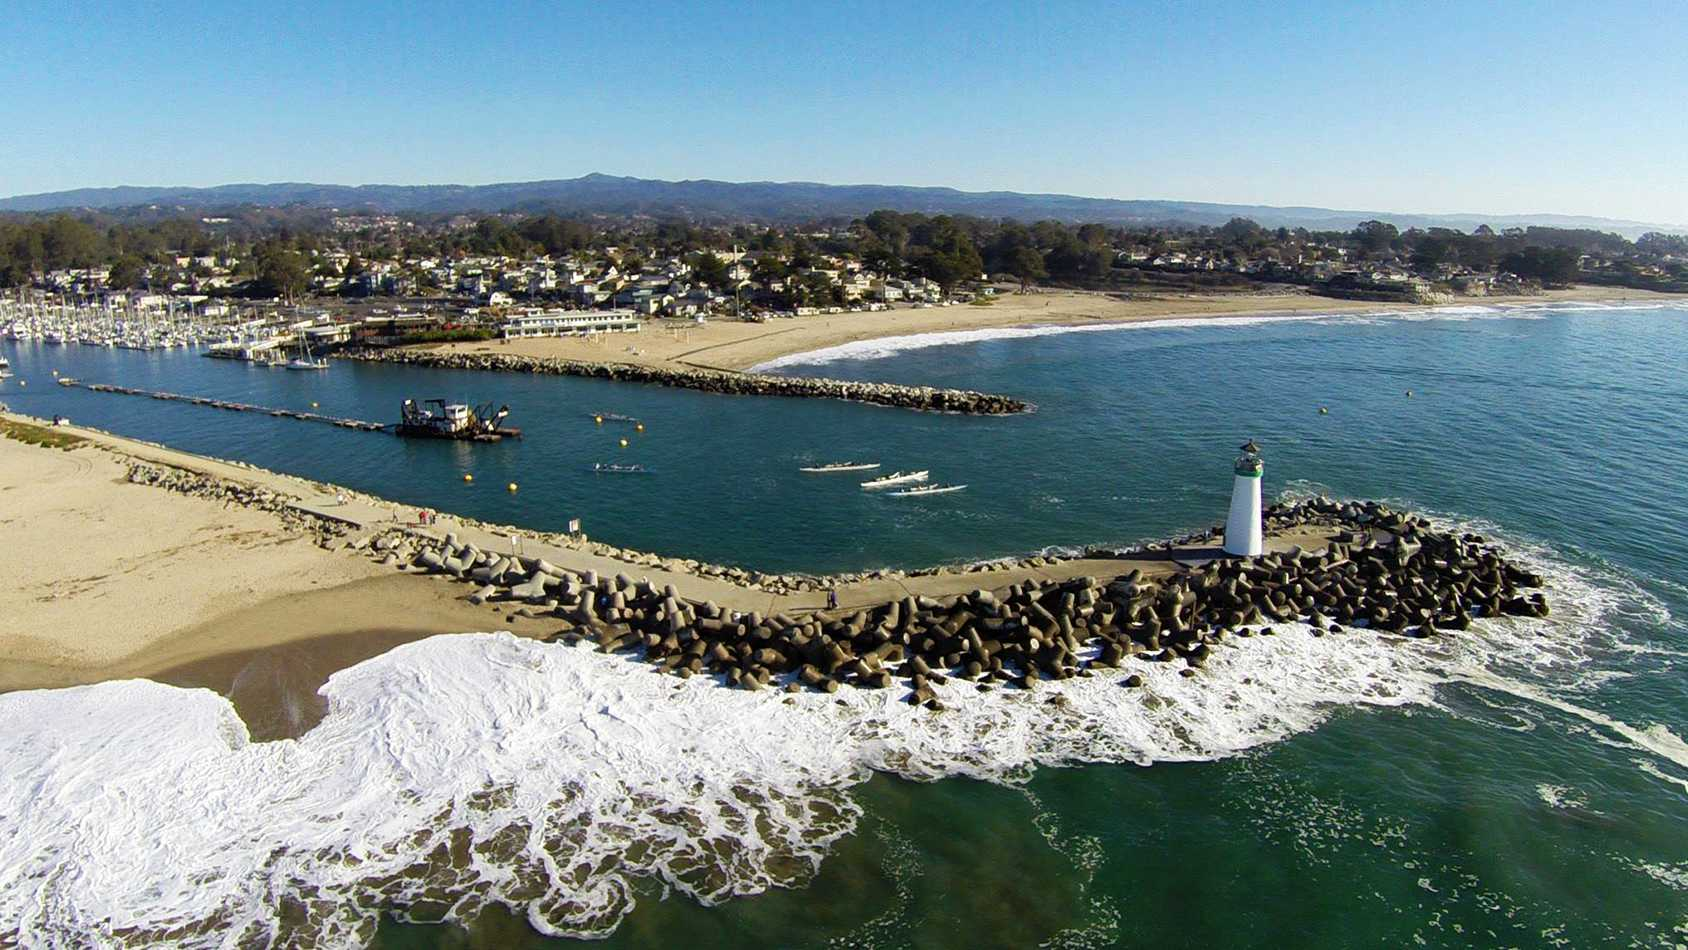 This beautiful photo of the Santa Cruz Harbor was shot by Archer Koch's drone camera.